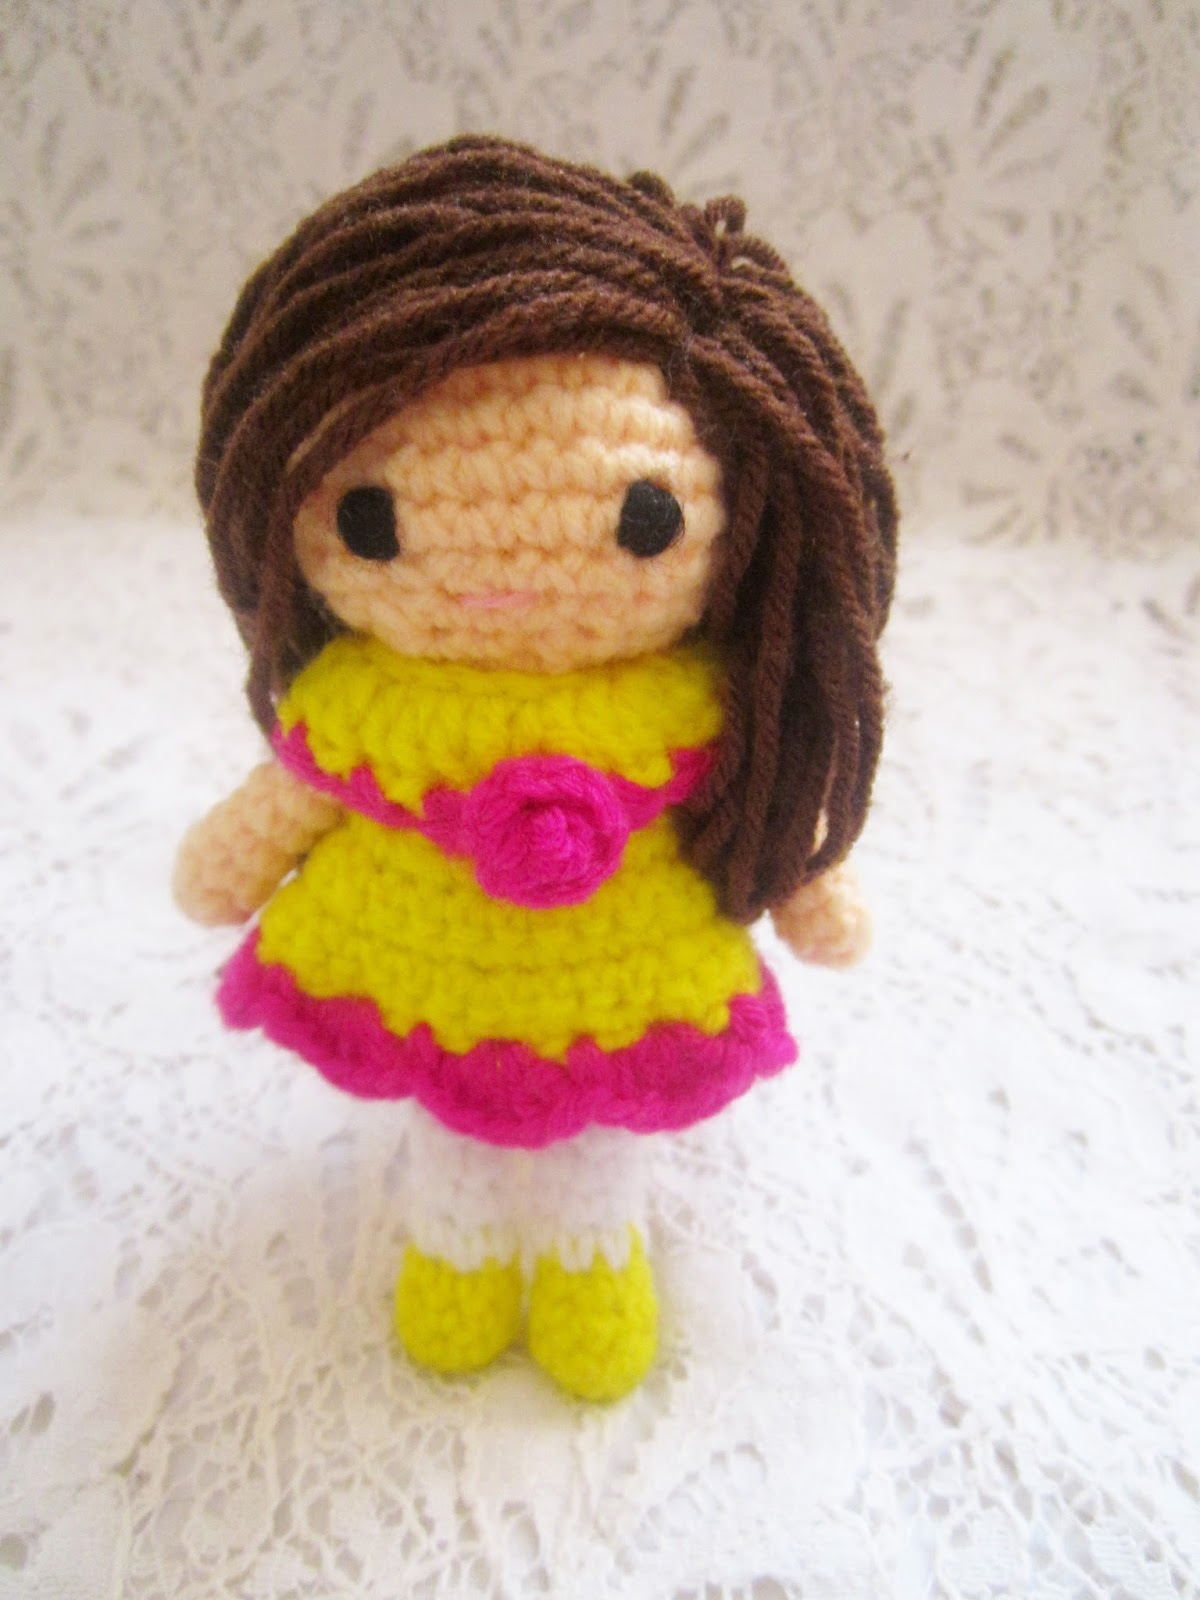 Little Amigurumi doll pattern. - A little love everyday!